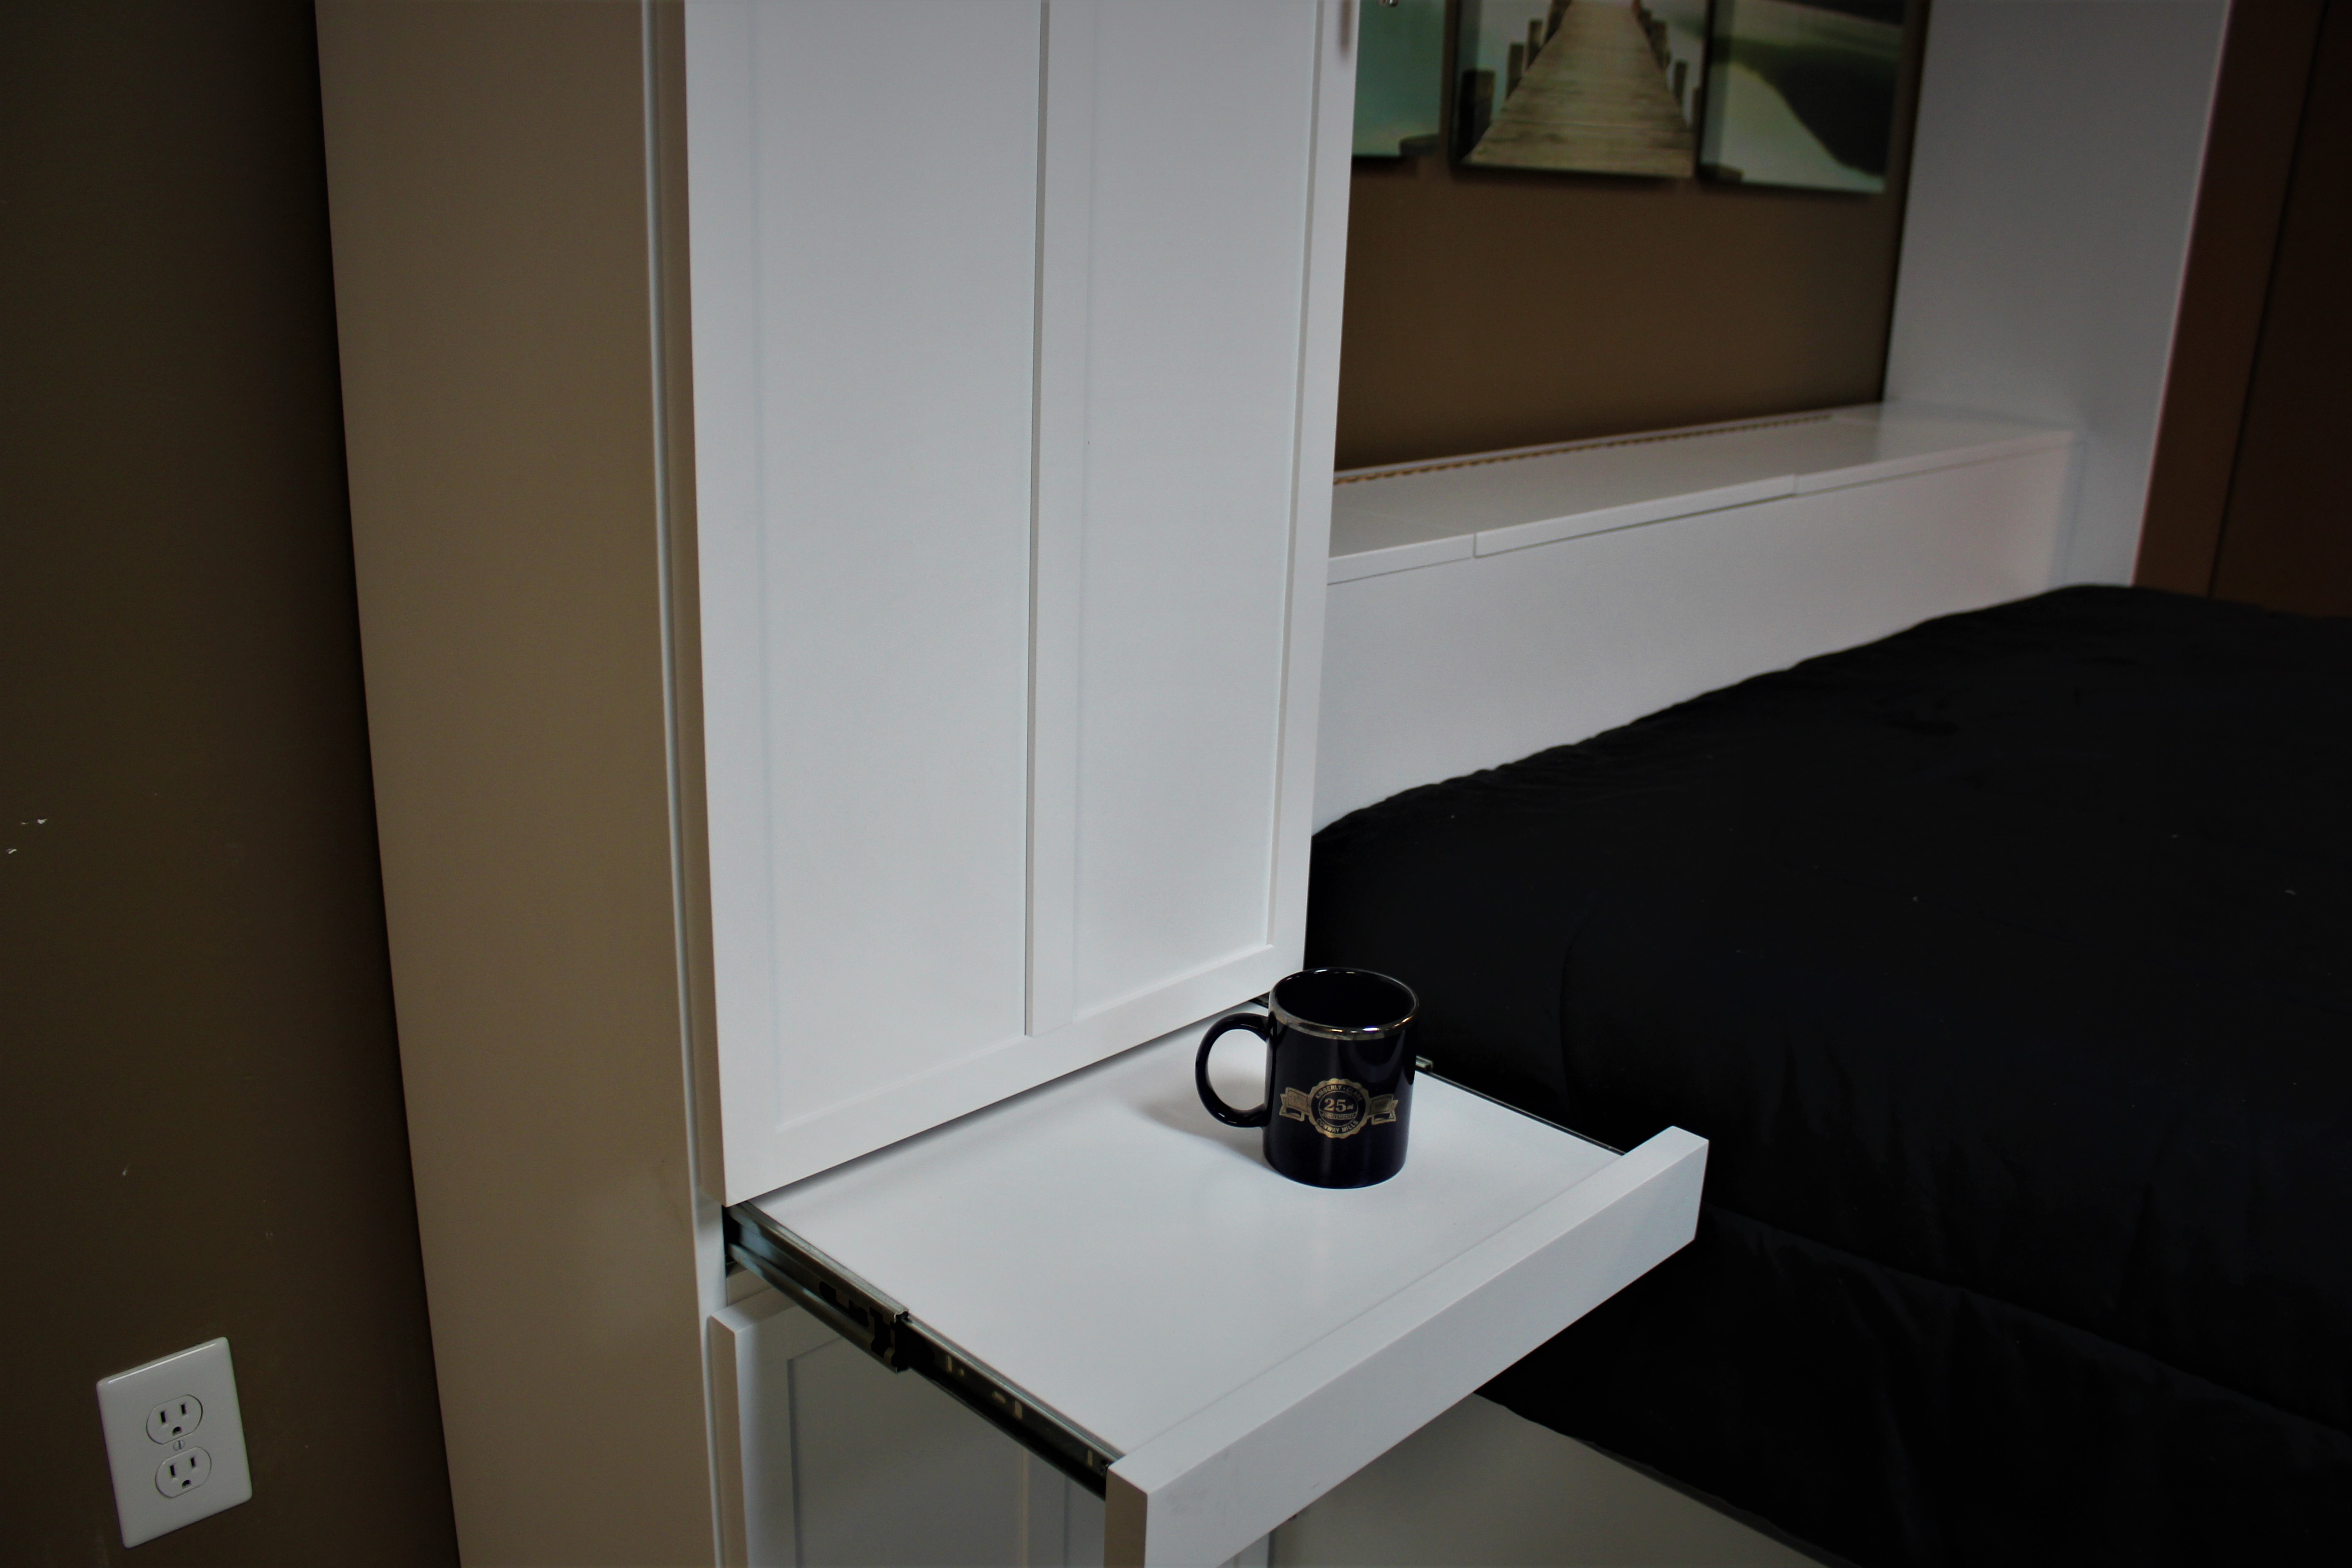 Lift Bed Drink Tray